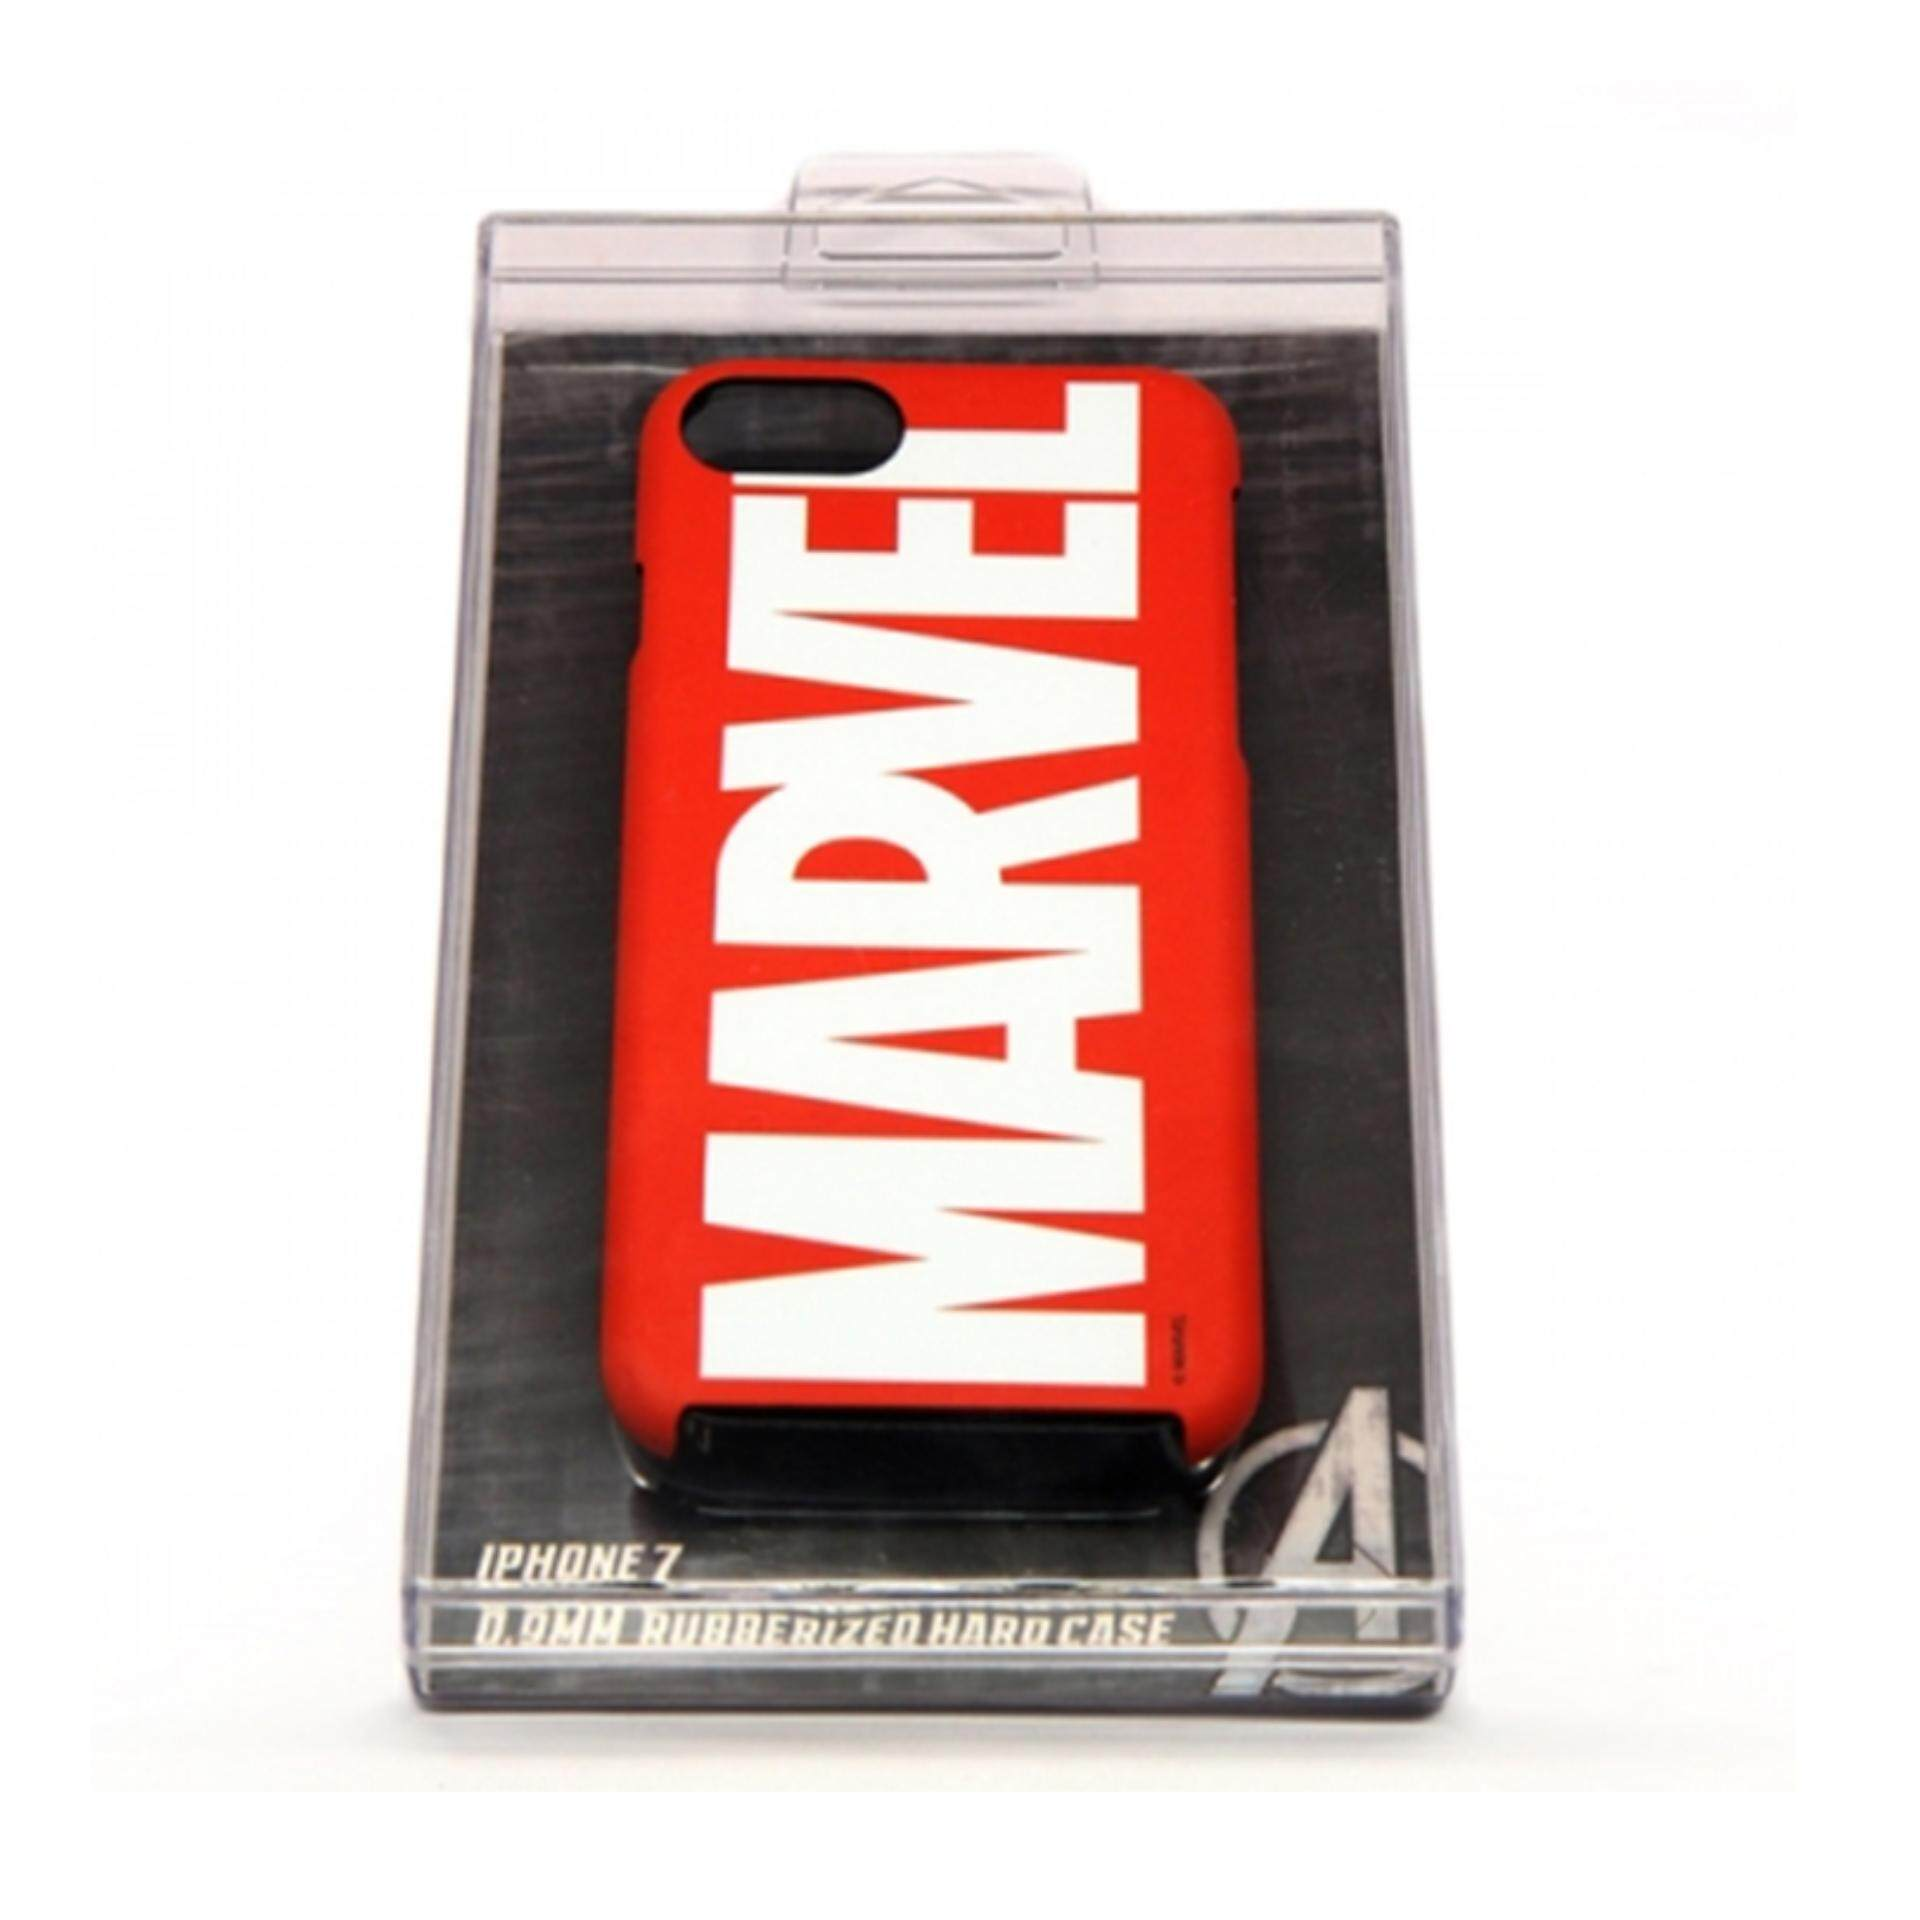 Marvel Avengers iPhone 7 Case 4.7 Inches - Marvel